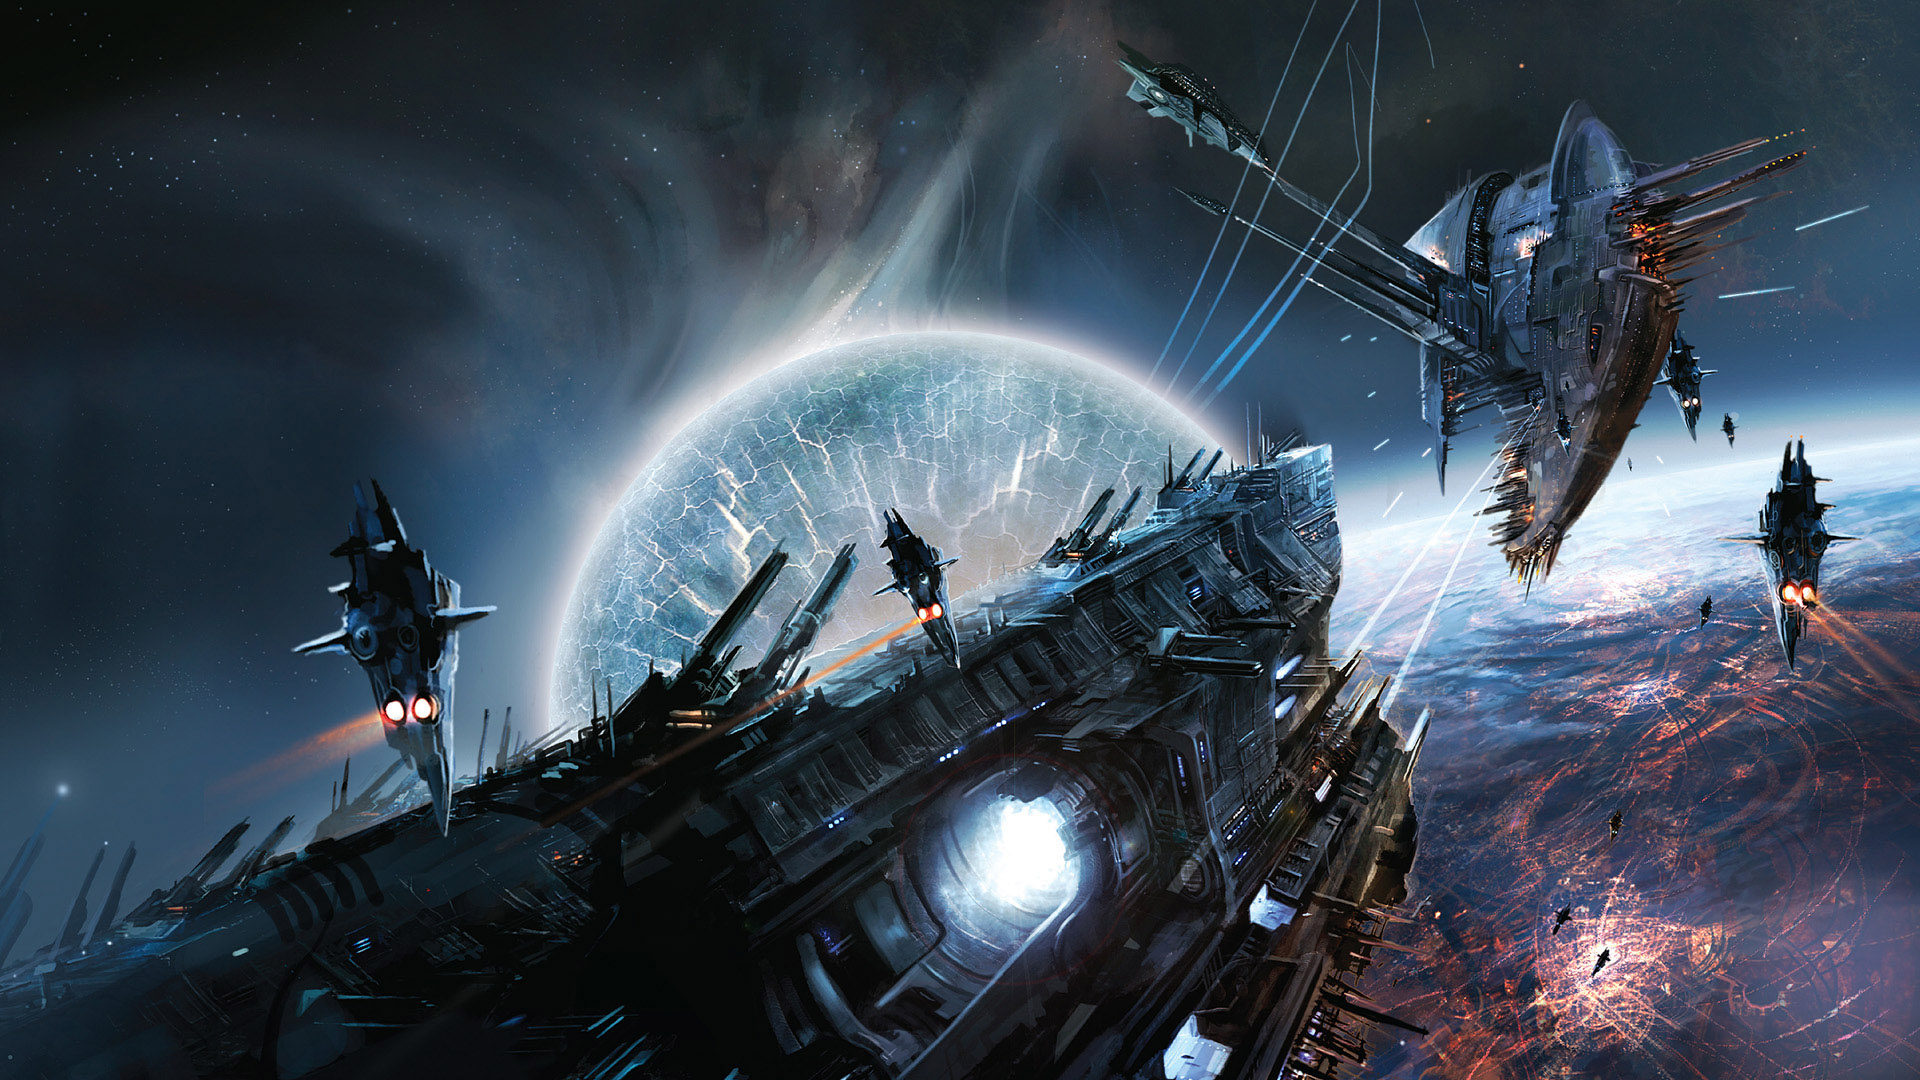 Space War Game Scene Wallpapers HD Wallpapers 1920x1080